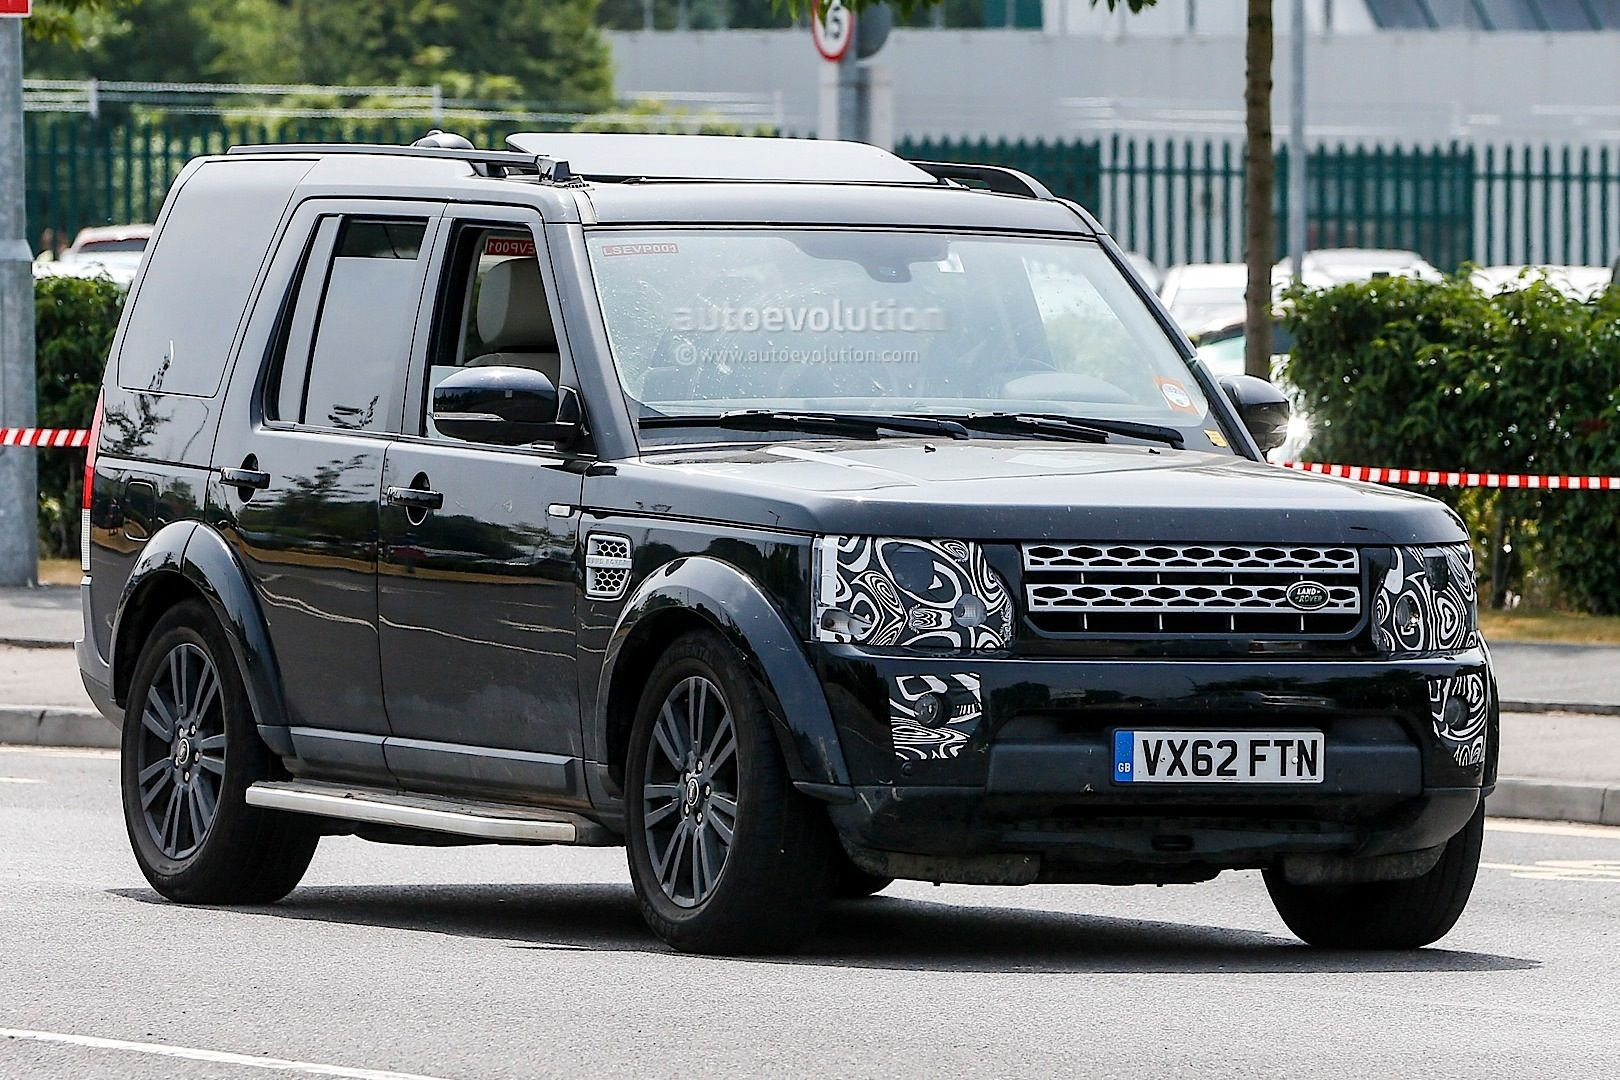 Amazing 2014 Land Rover Discovery Photo Hd Wallpapers